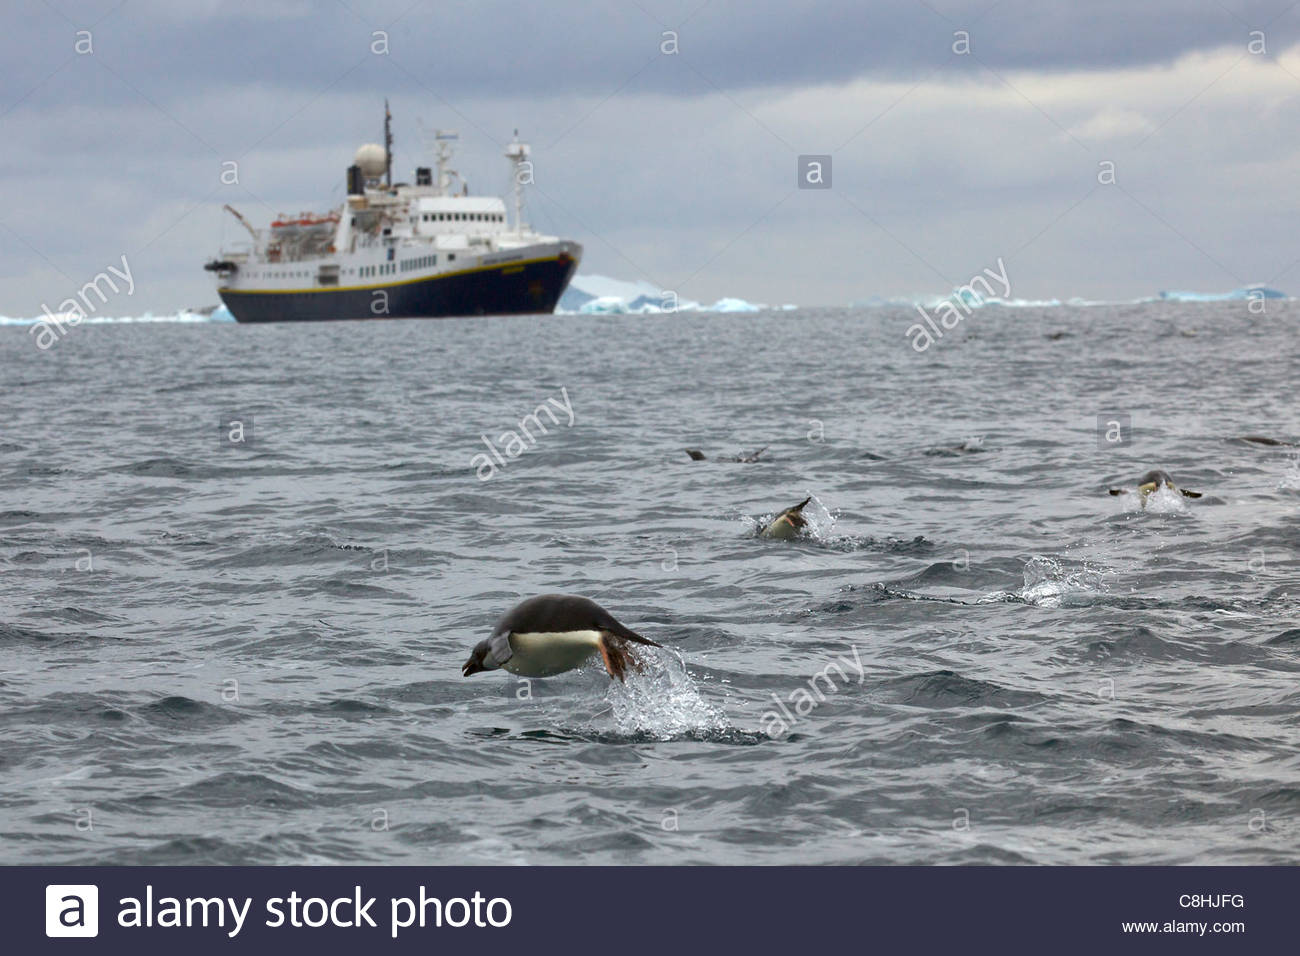 Adelie penguins leaping near the National Geographic Endeavor. - Stock Image